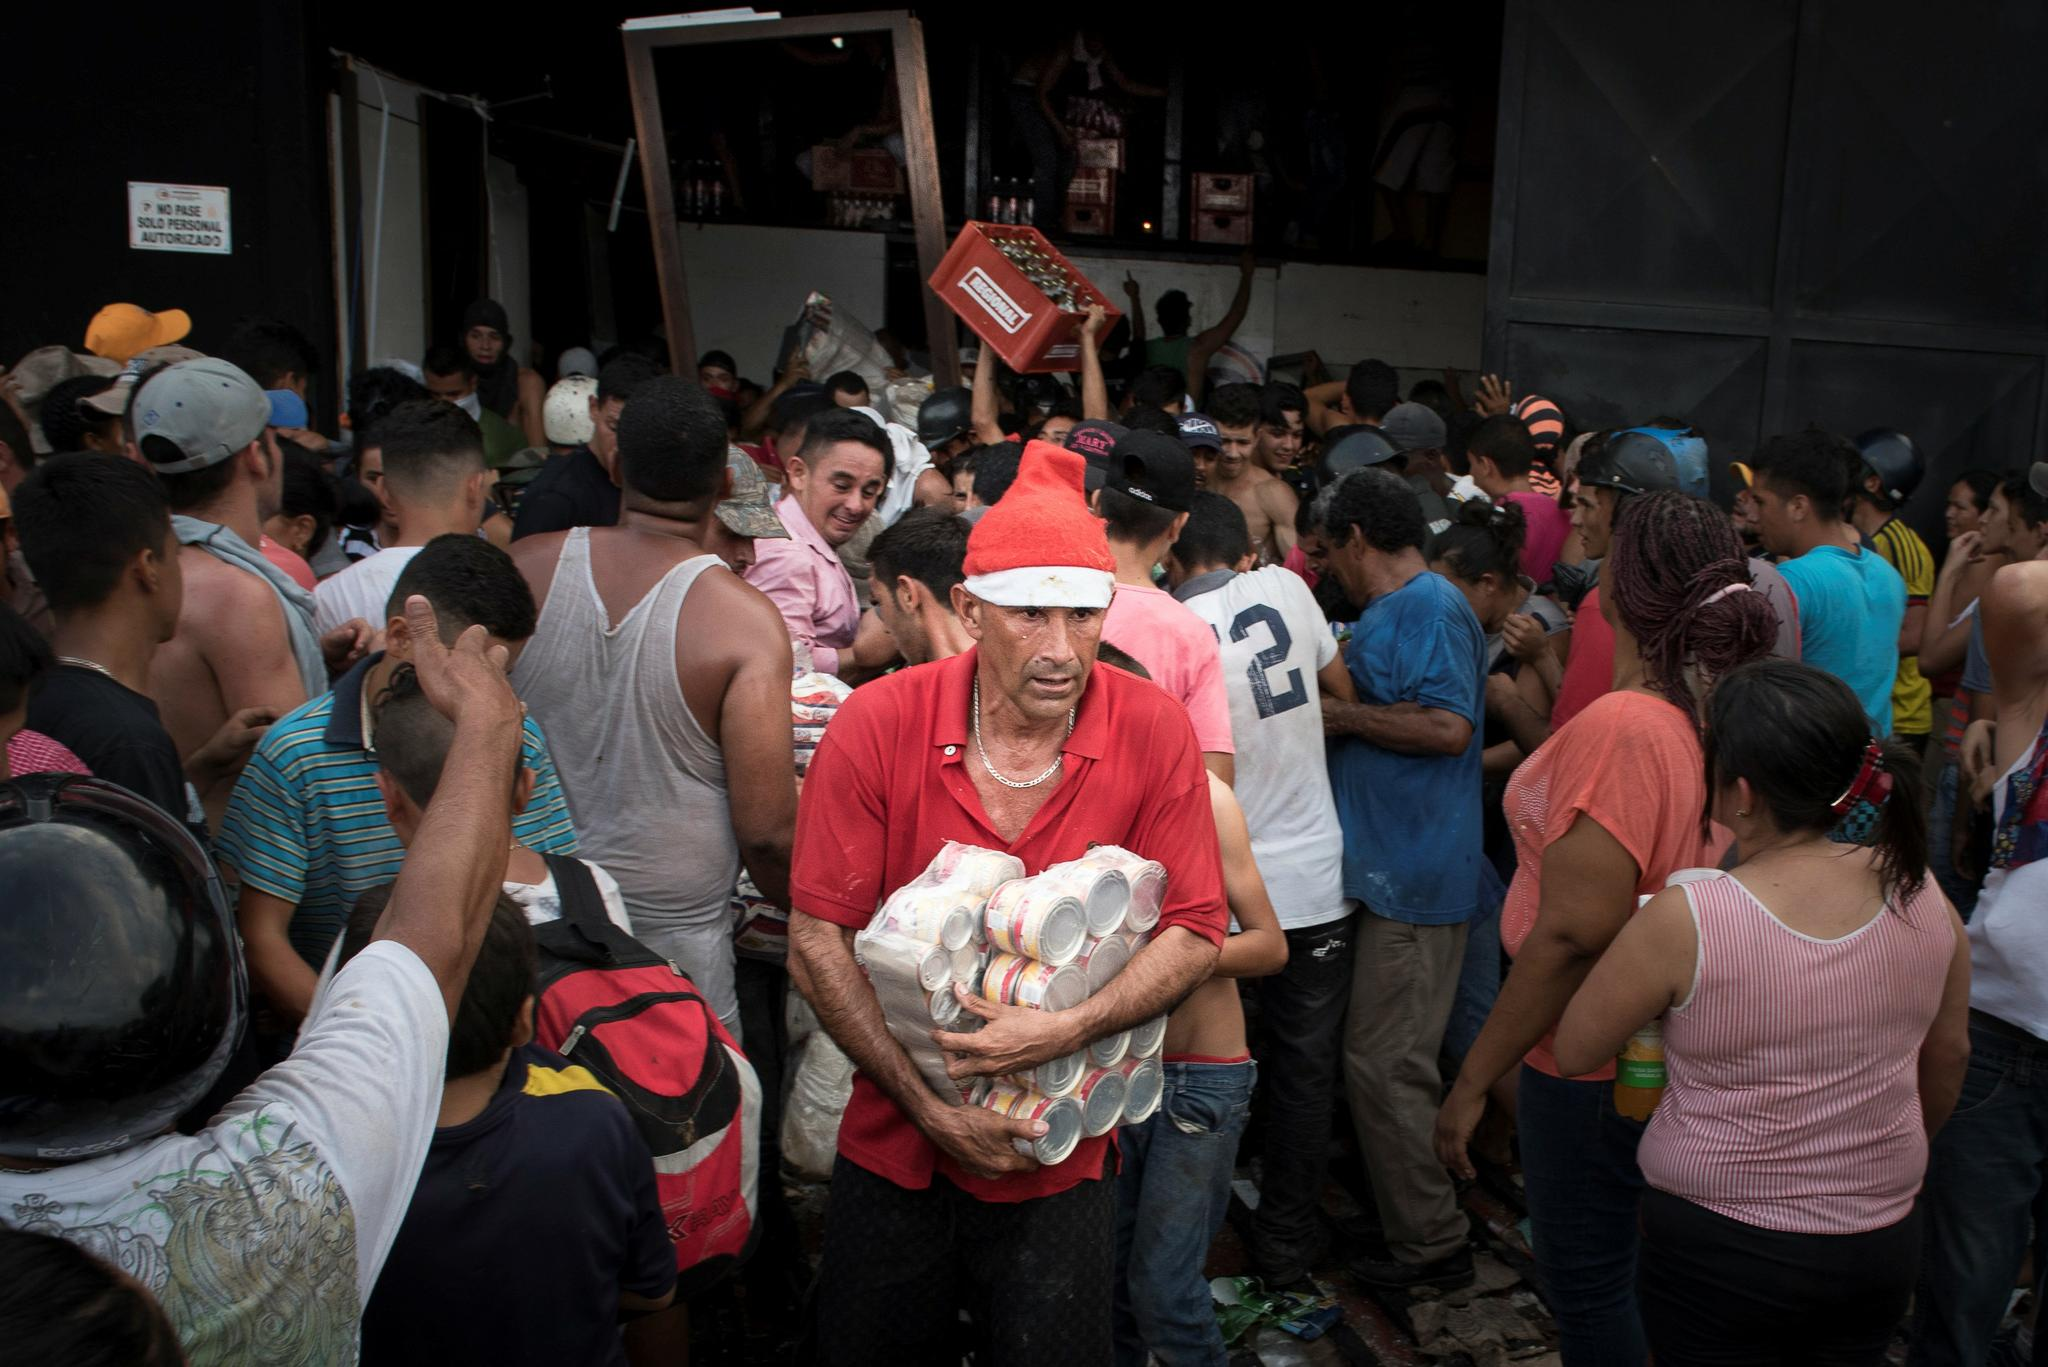 People carry cans of food and bottles of drinks as they loot a food warehouse during a protest in La Fria, Tachira, Venezuela, on December 17, 2016. As Venezuela's economic crisis worsens, the grocery stores are empty, and a local prison doubles as makeshift supermarket.